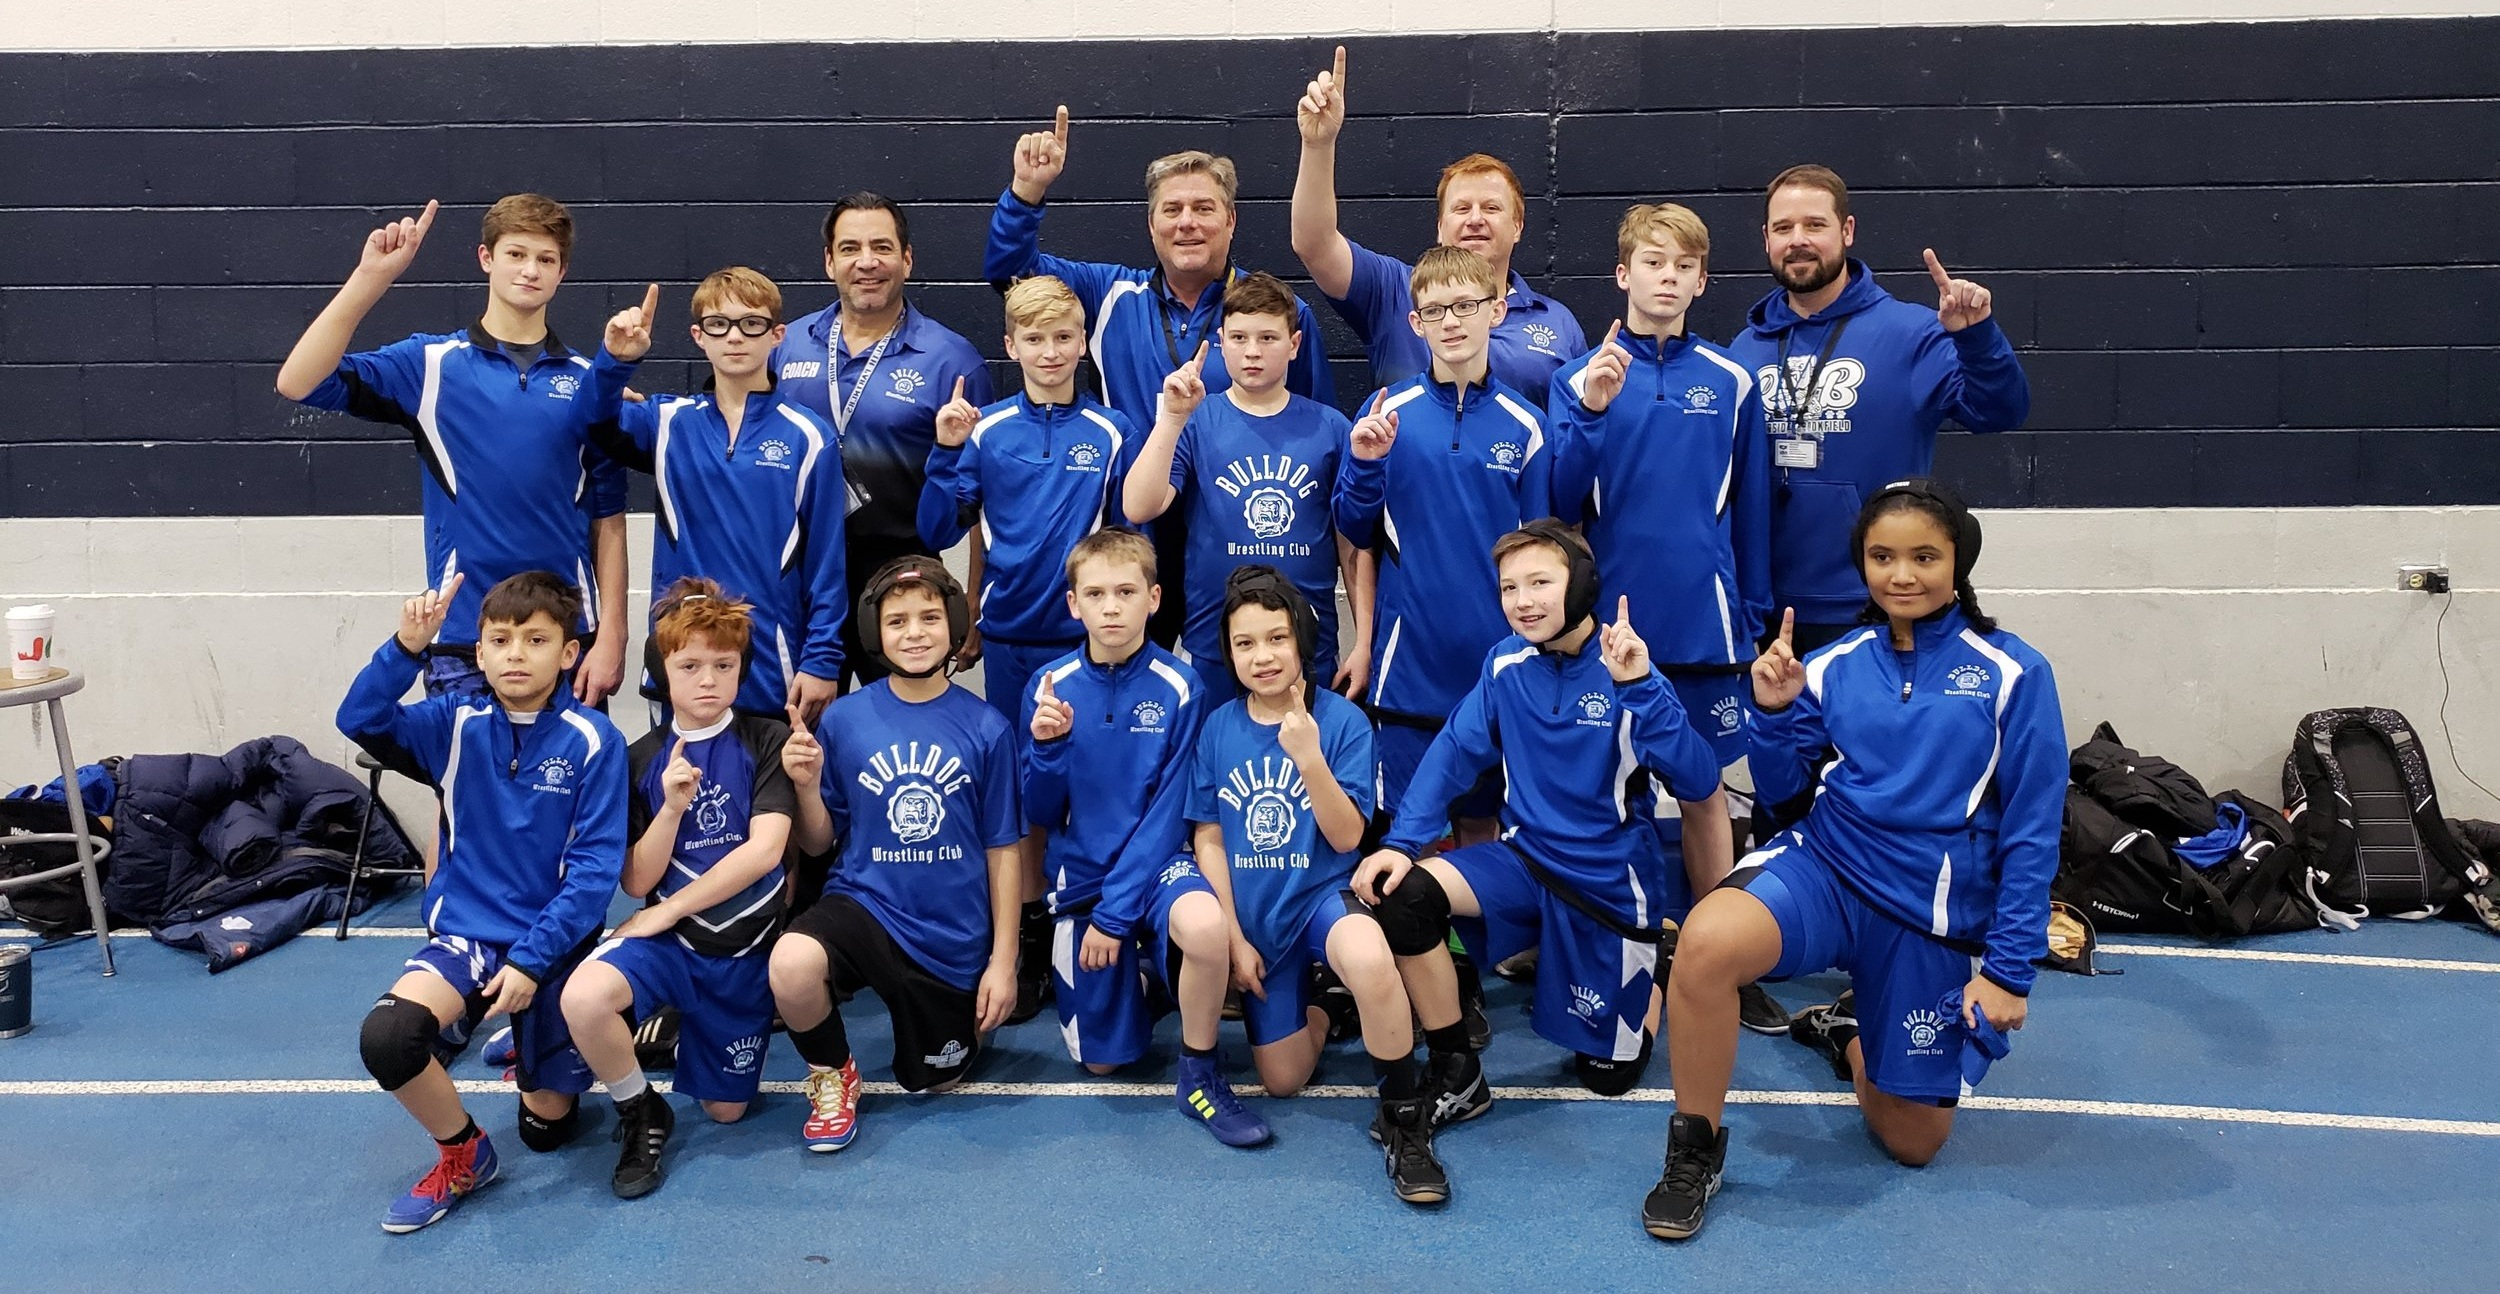 The 2018-19 Competitive Team at the Downers Grove Tournament